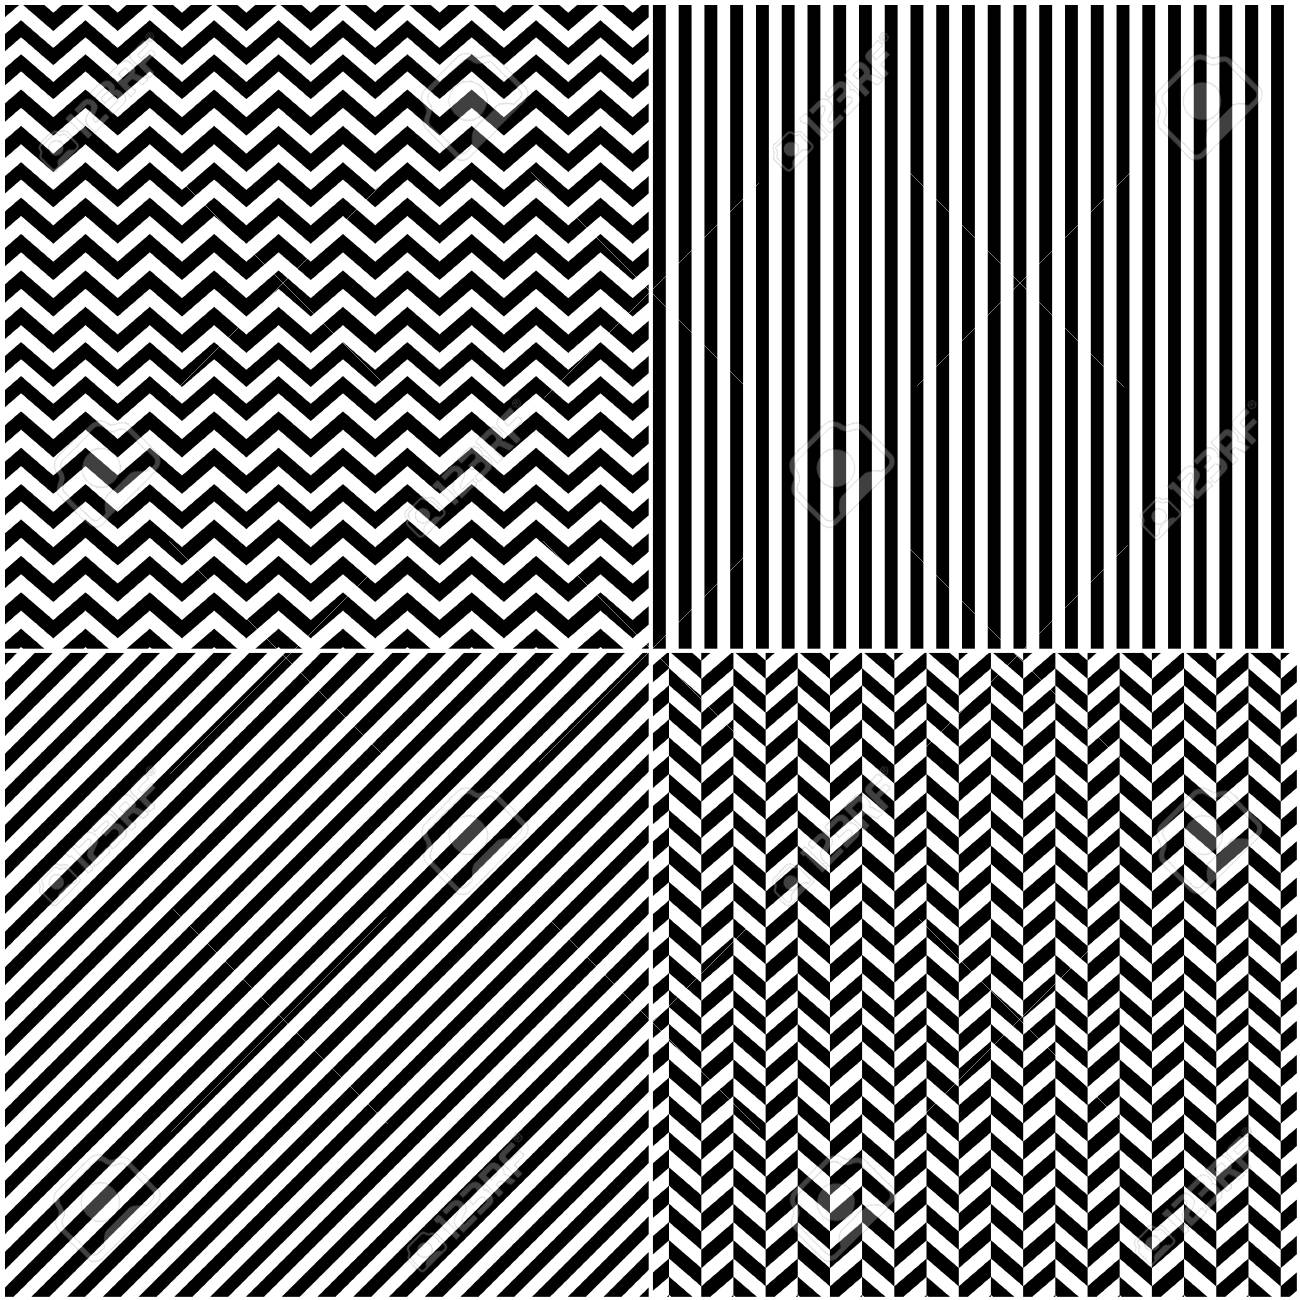 four classic black and white lines seamless patterns collection diagonal chevron zigzag and